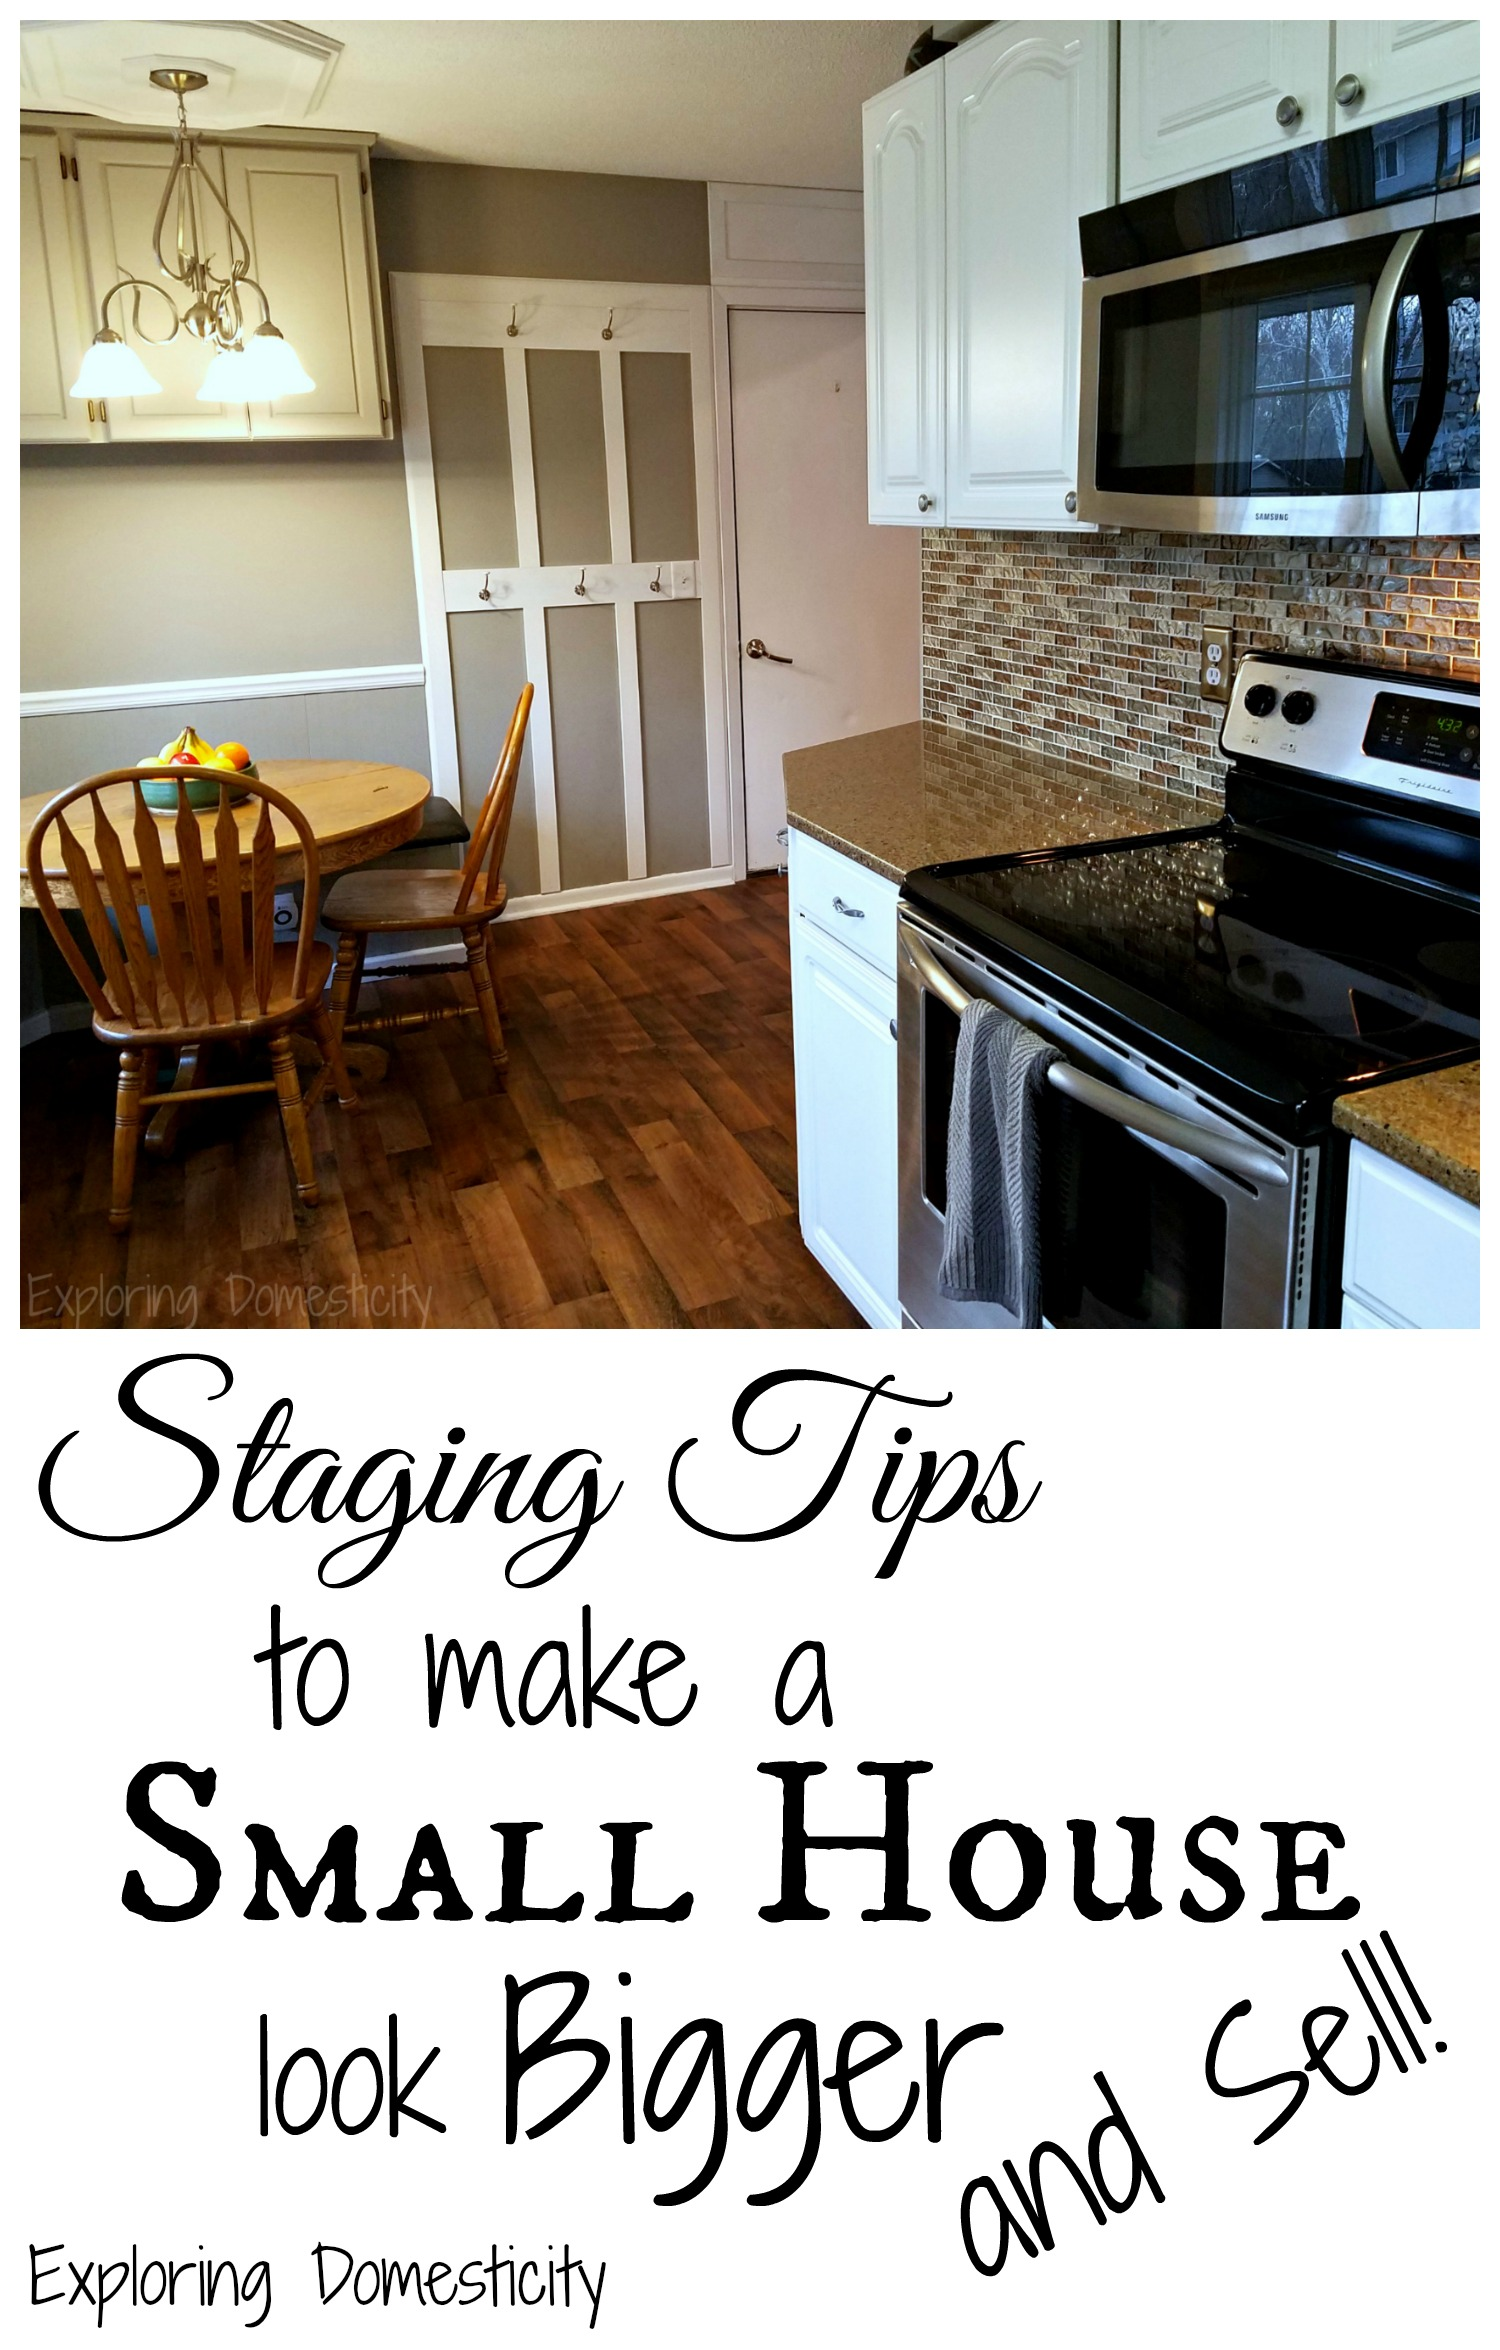 Making a small house look bigger archives exploring for Staging a home tips